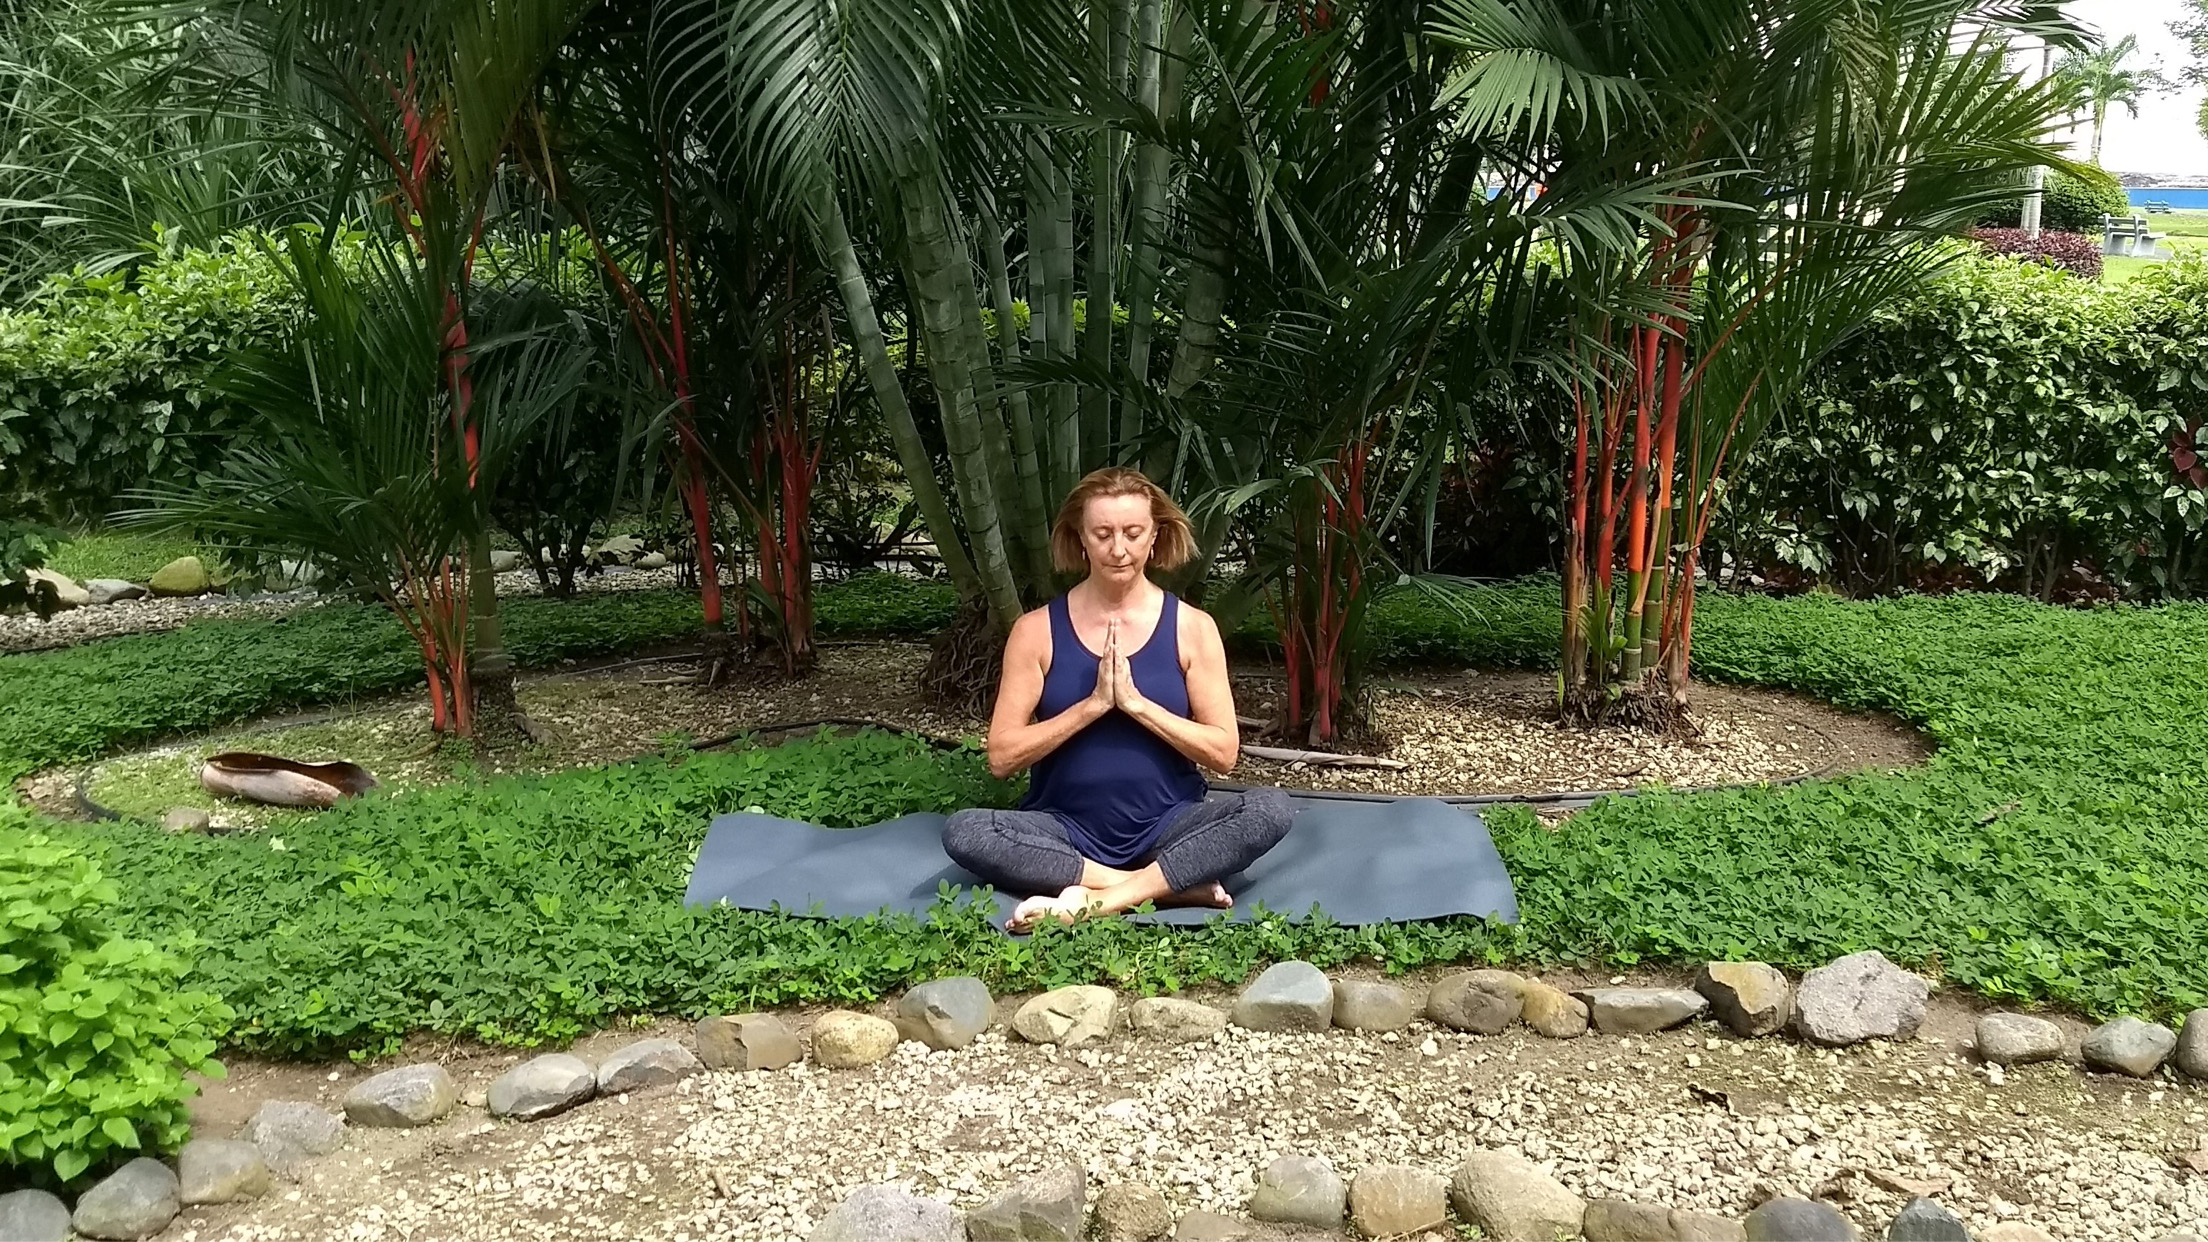 Yoga for Emotional Balance with Brenda Lyons, yoga workshop Panama, october 2018, Casco Yoga Panama, Yoga Studio. Casco Viejo. Panama City, Panama. Yoga Panama. Ashtanga yoga panama. Vinyasa yoga panama. clases de yoga en panama. Casco Antiguo Panama. boutique yoga studio